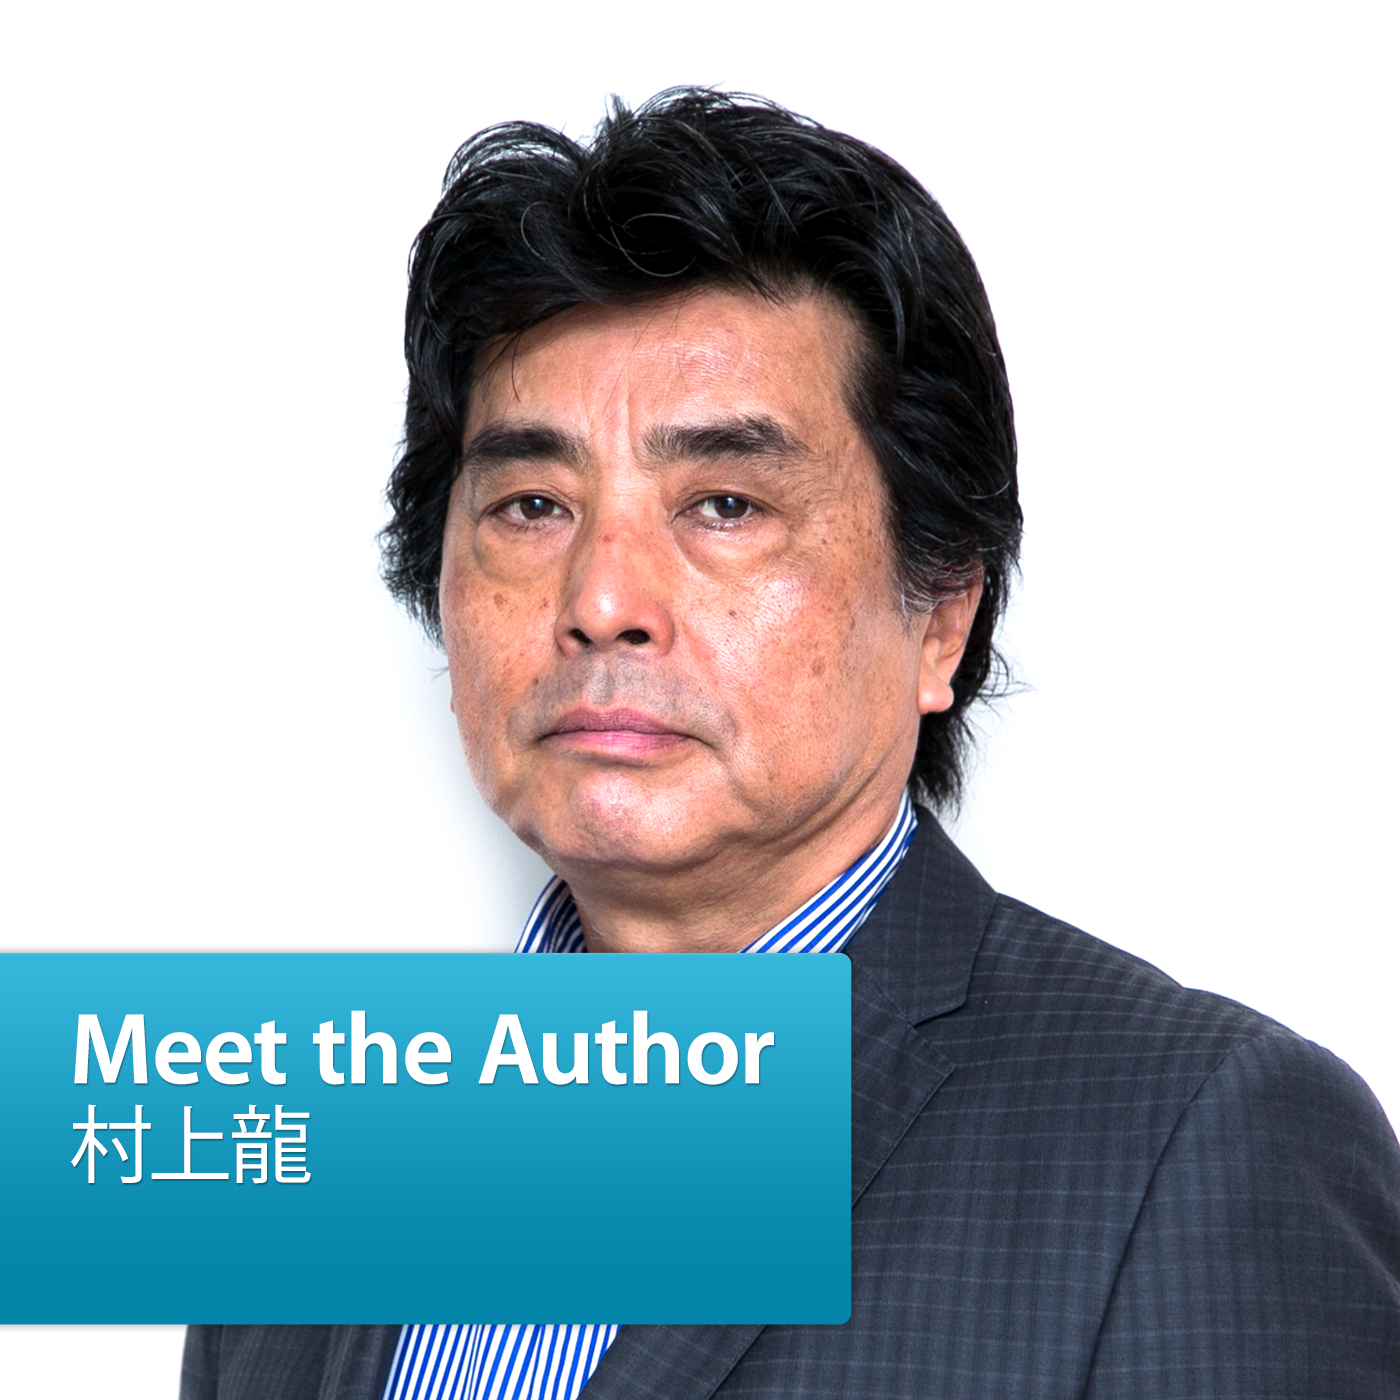 村上龍: Meet the Author